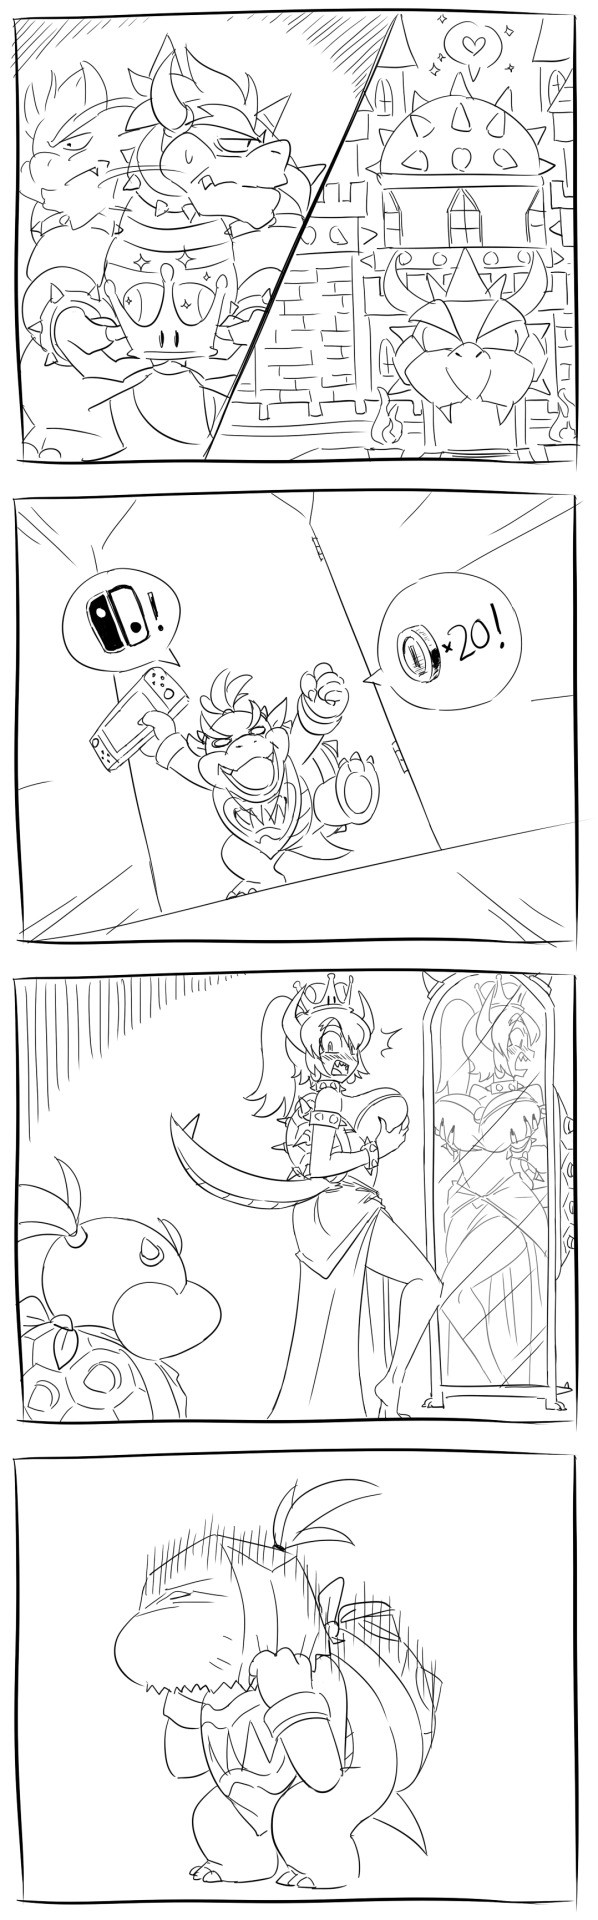 Family Embarrassment. Whoops... i still love bowsette